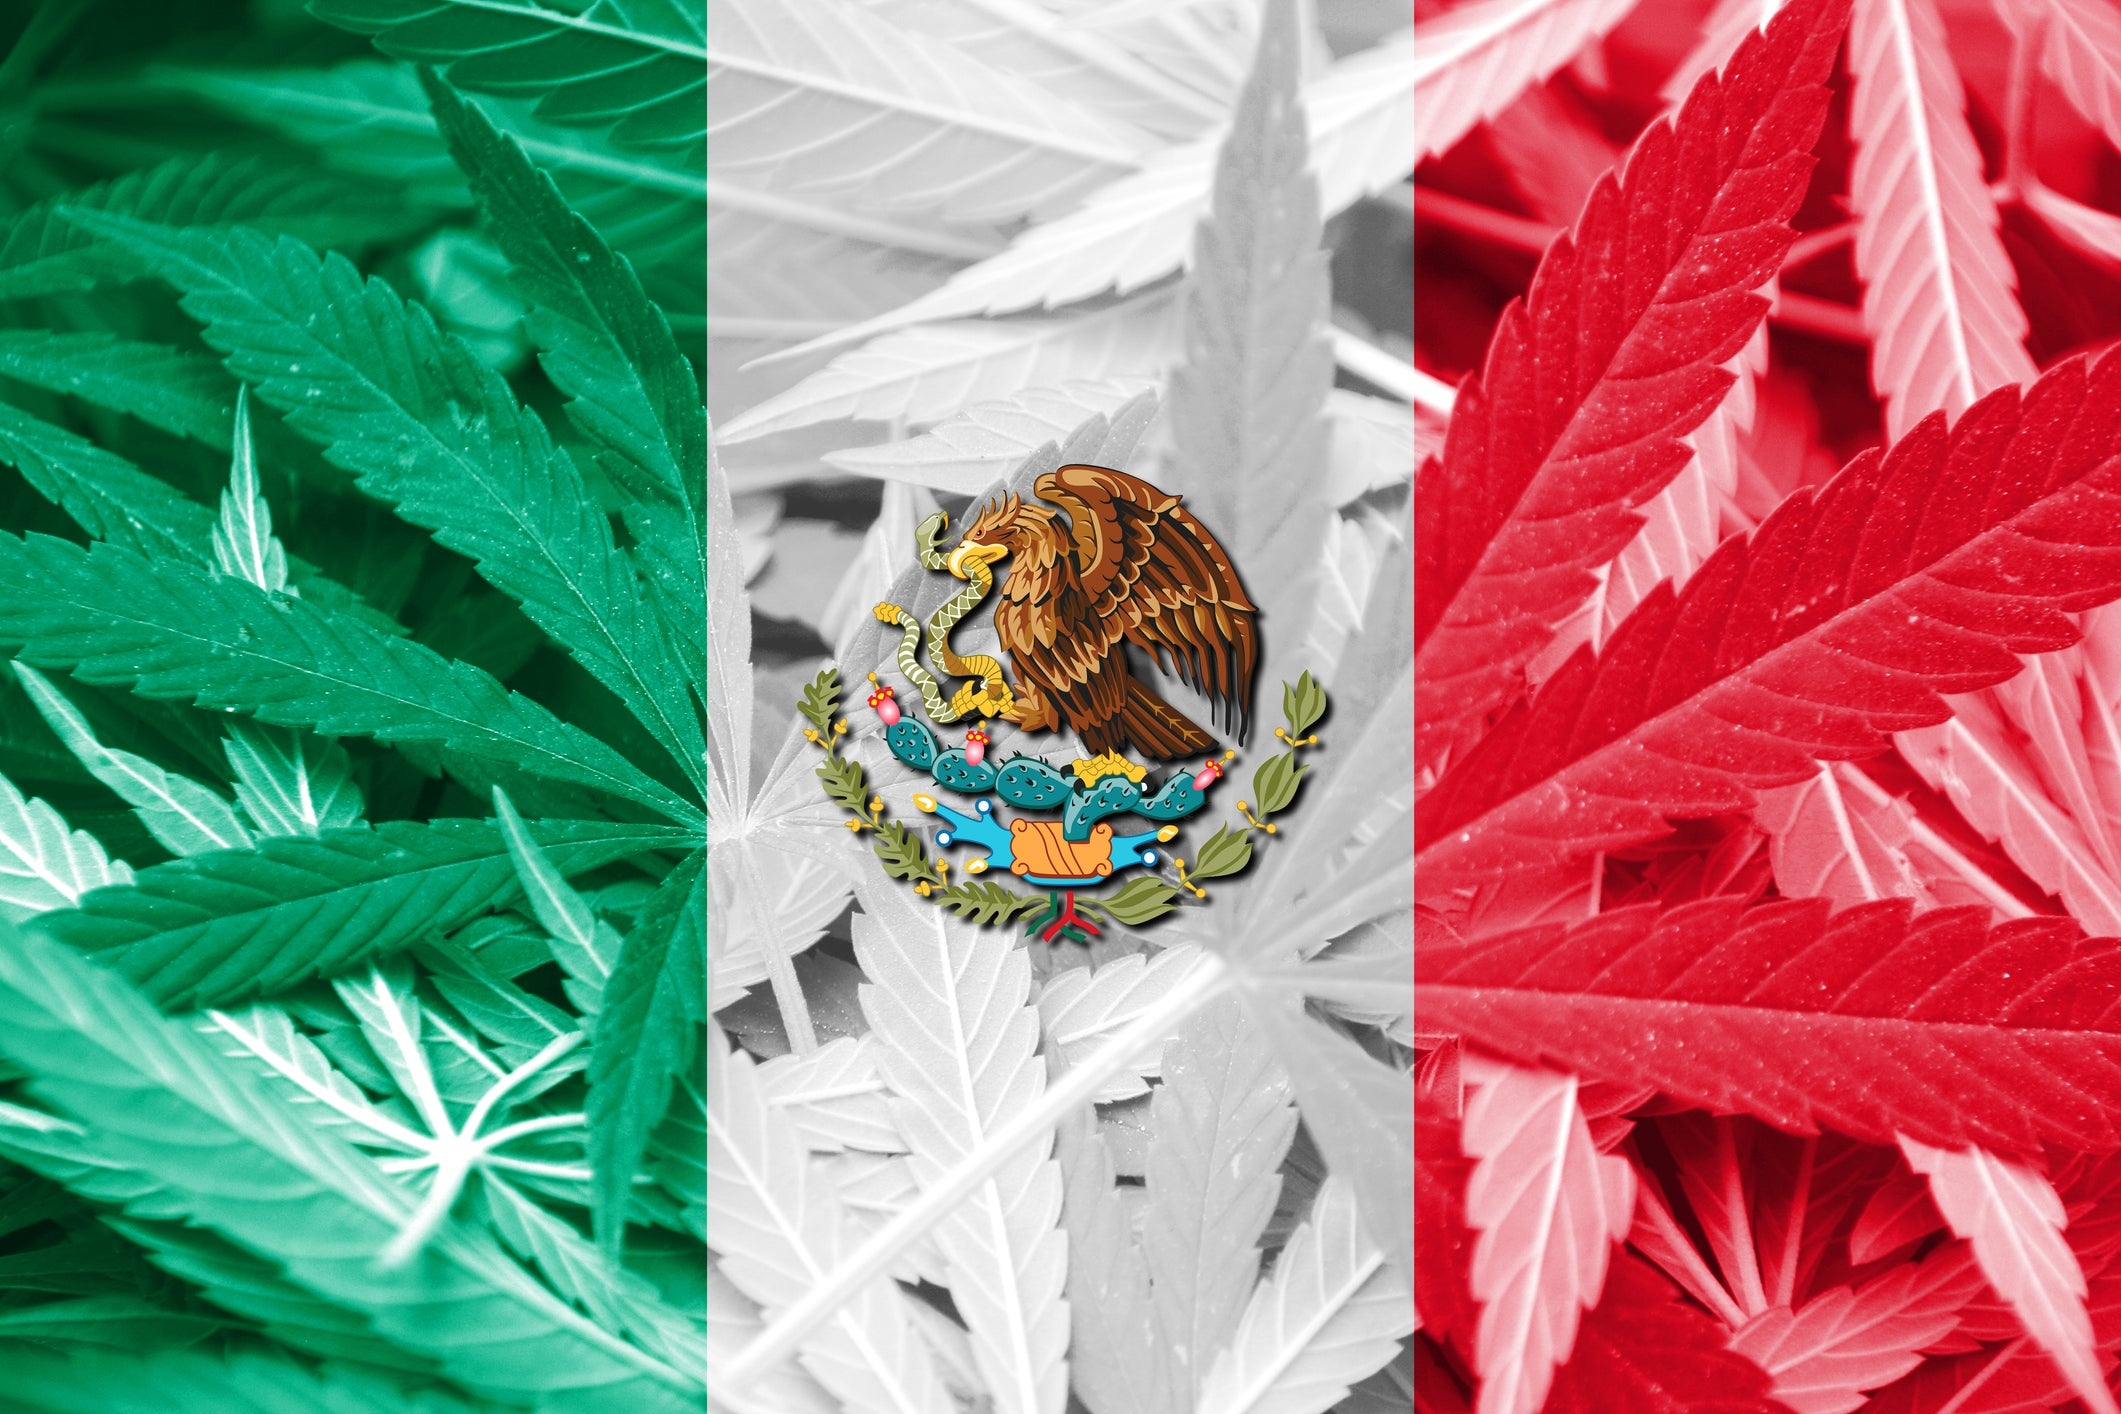 Mexico Moves Closer to Legalizing Cannabis, but 1 Issue Still Remains | The Motley Fool